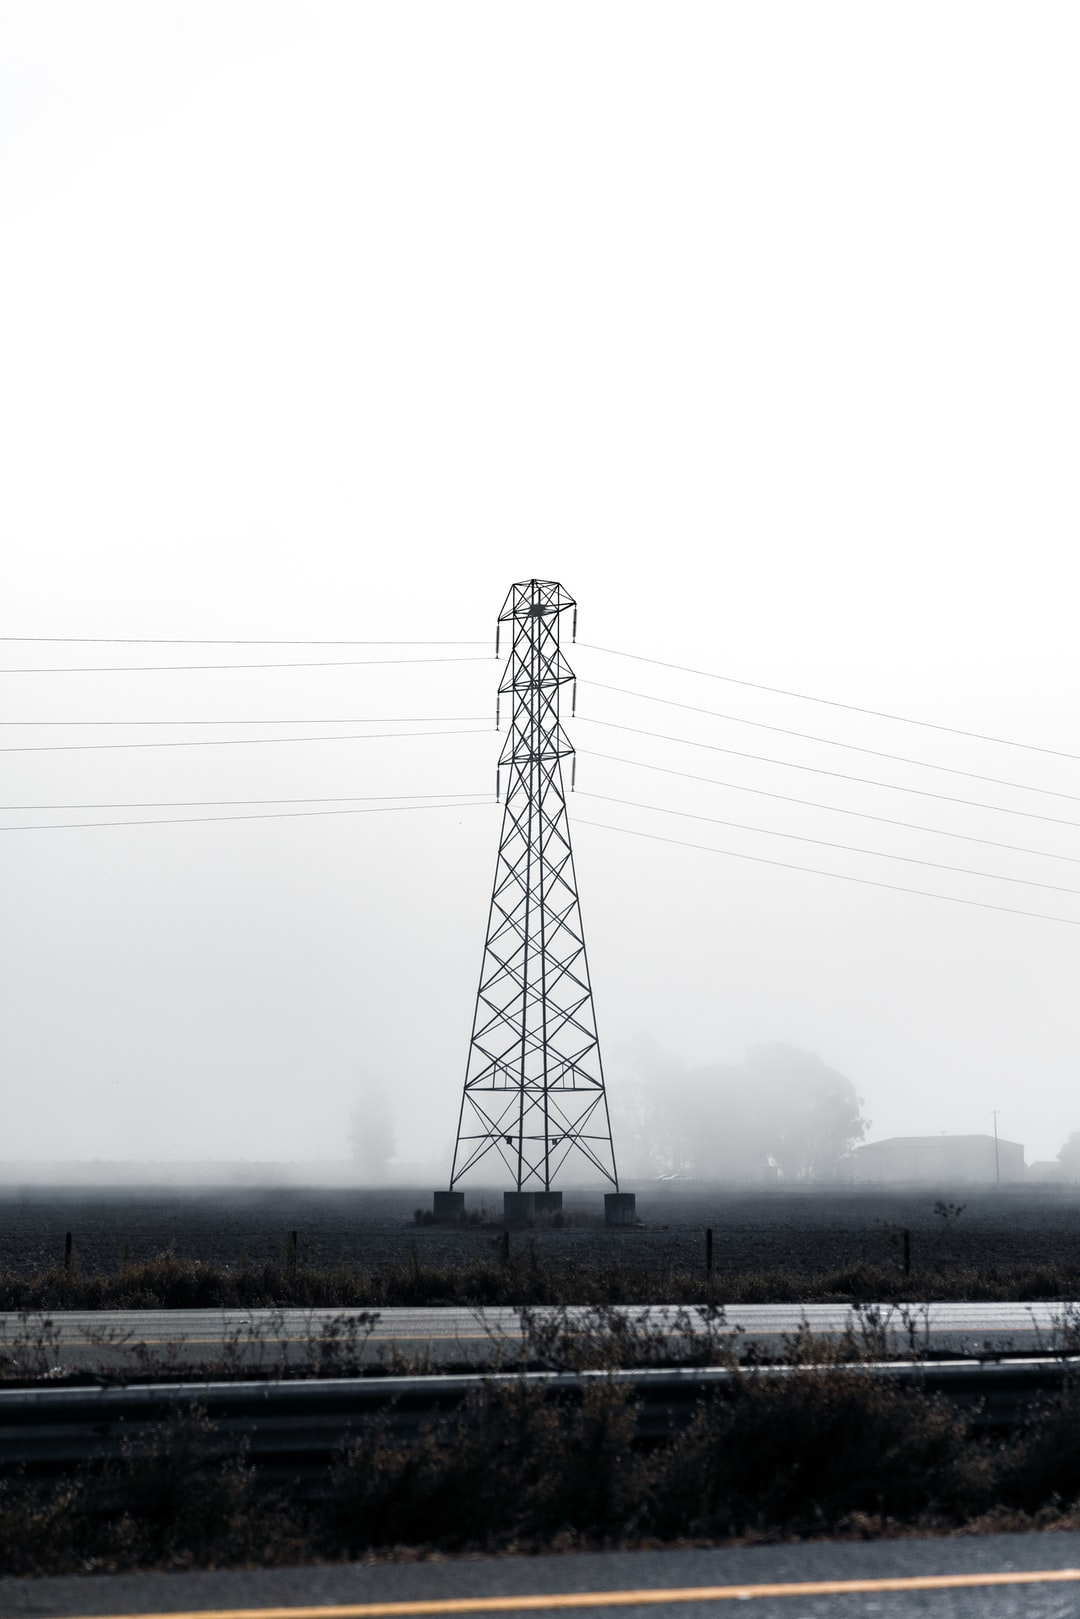 Steel lattice structure of an electric power transmission tower.